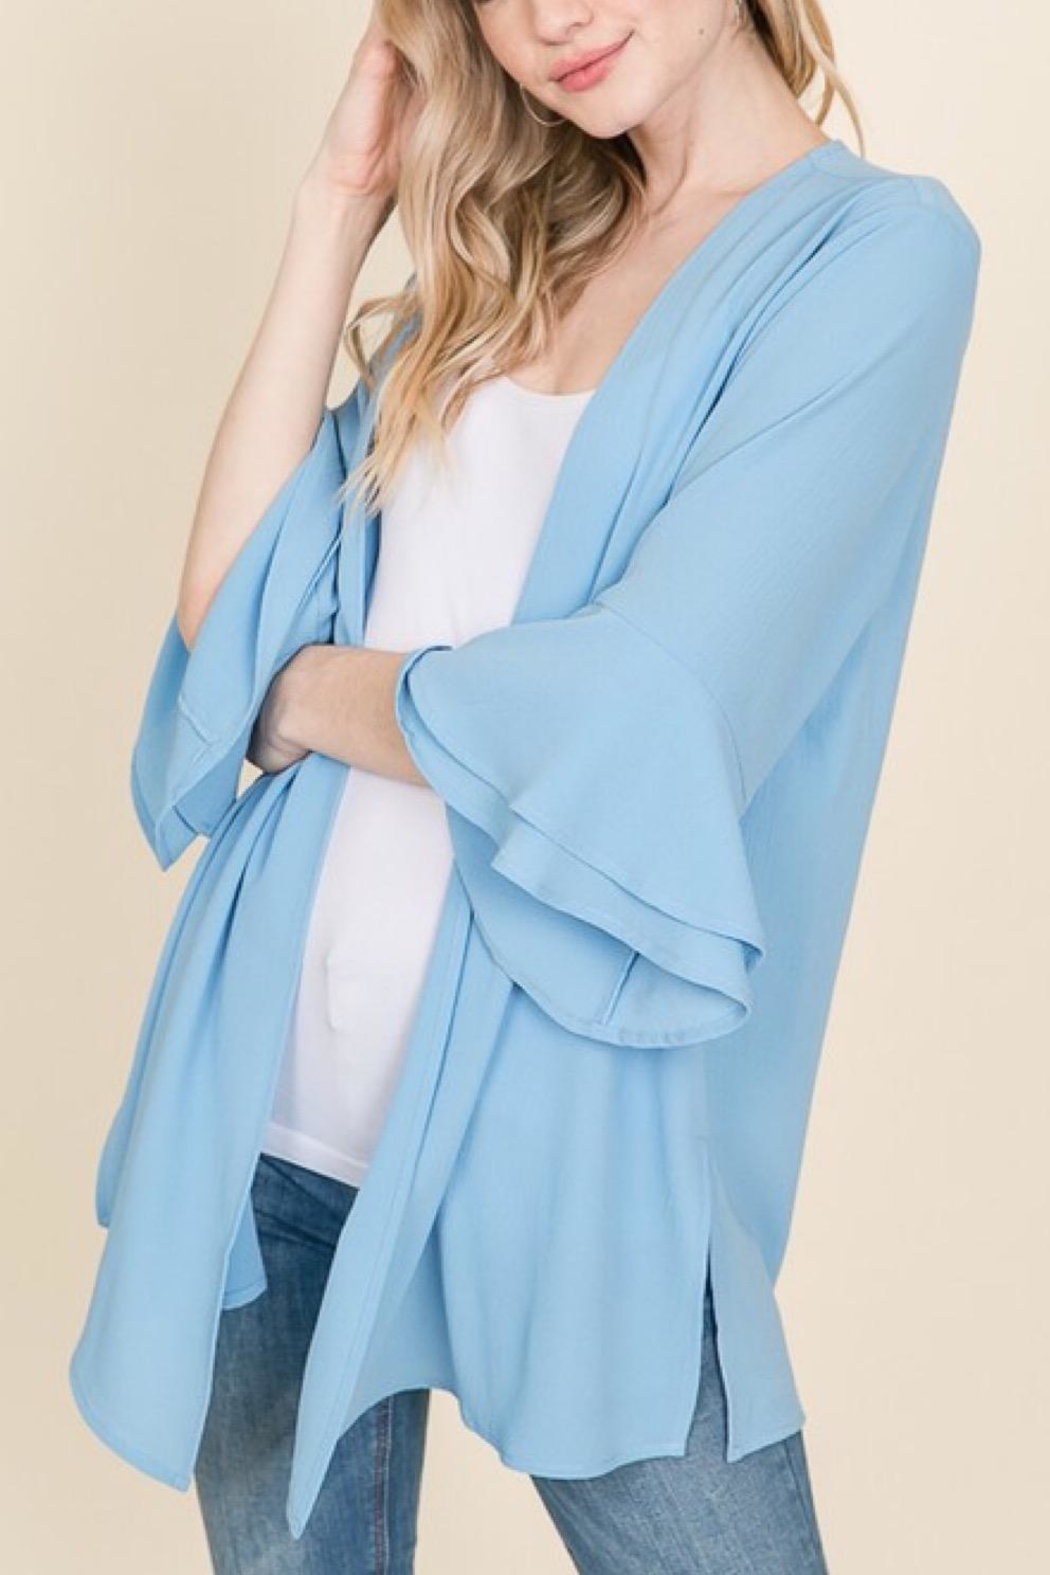 Racheal Misty Blue Cardigan - Front Full Image